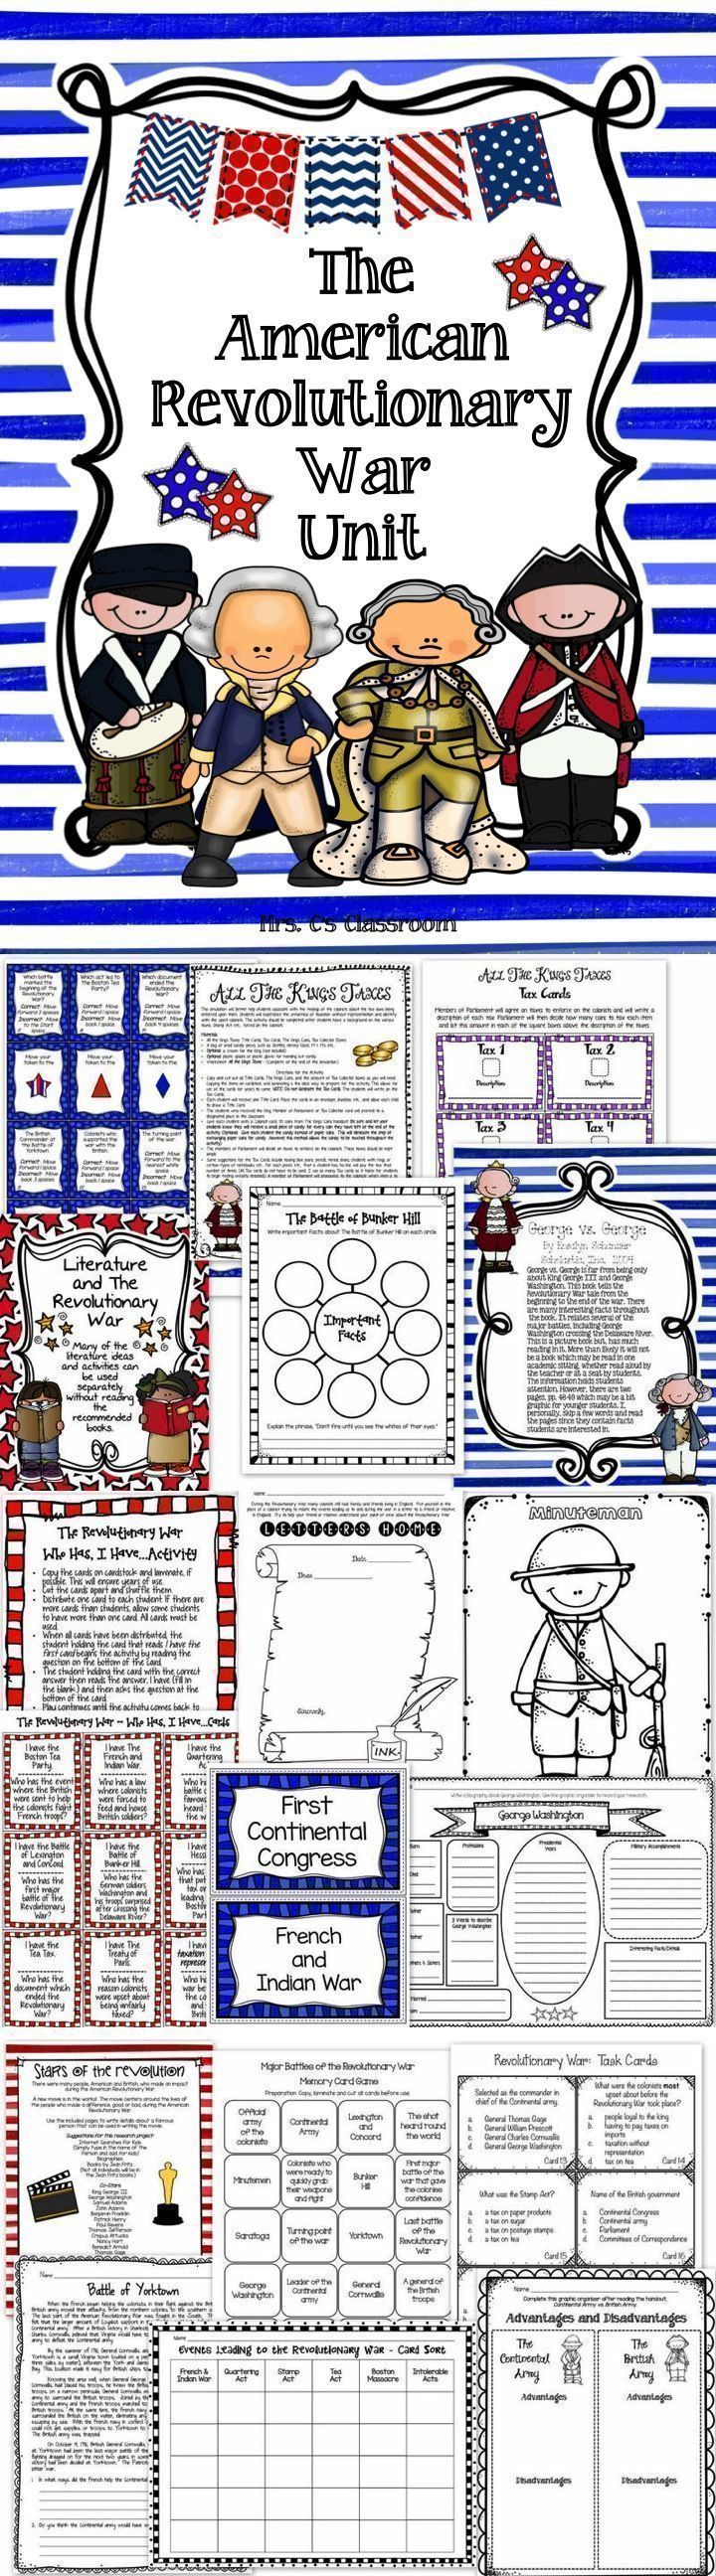 If you teach the American Revolutionary War, this is the unit for you. This American Revolutionary War Unit consists of reading passages, worksheets, reference pages, activities, games, coloring pages, images/pictures, and vocabulary words for a word wall. There is an abundance of information included with the unit.